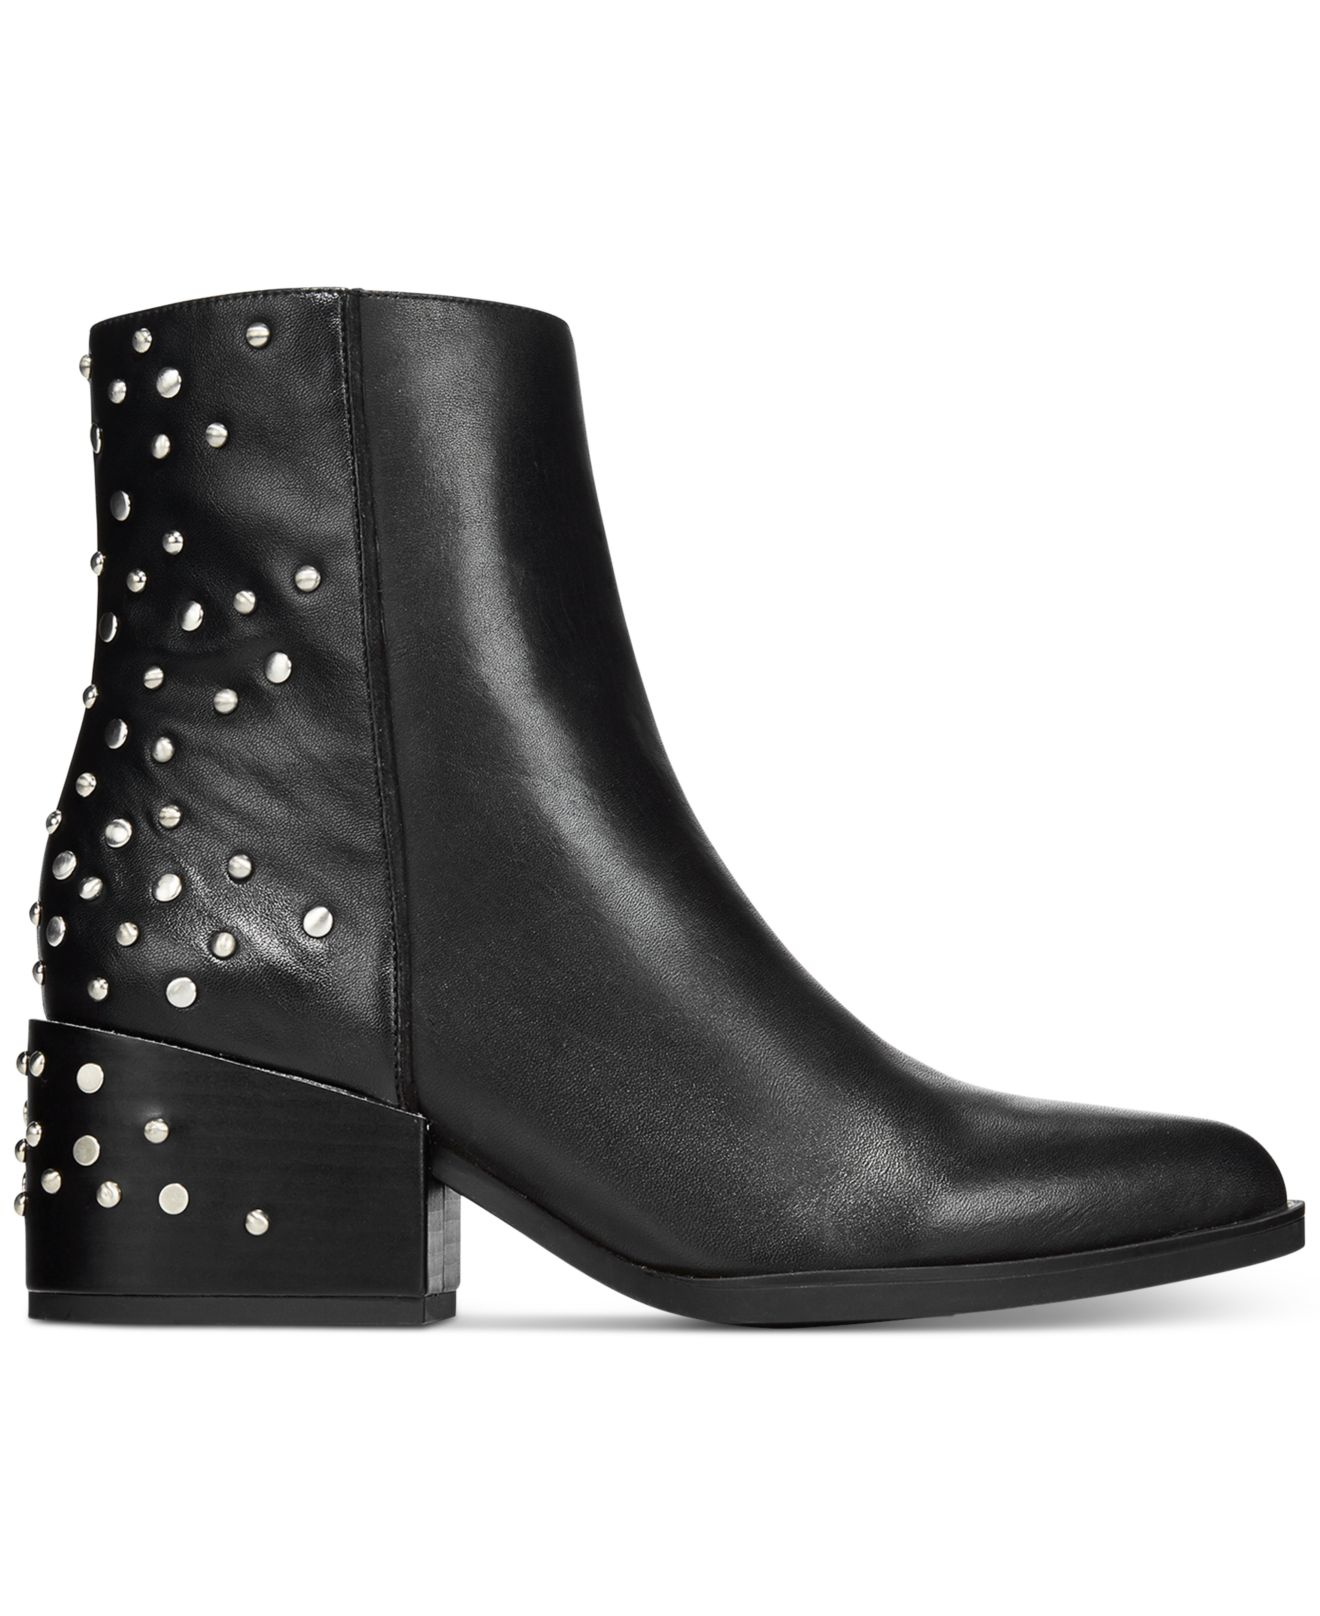 e908df4d2c4c0 Lyst - Circus by Sam Edelman Rae Studded Booties in Black